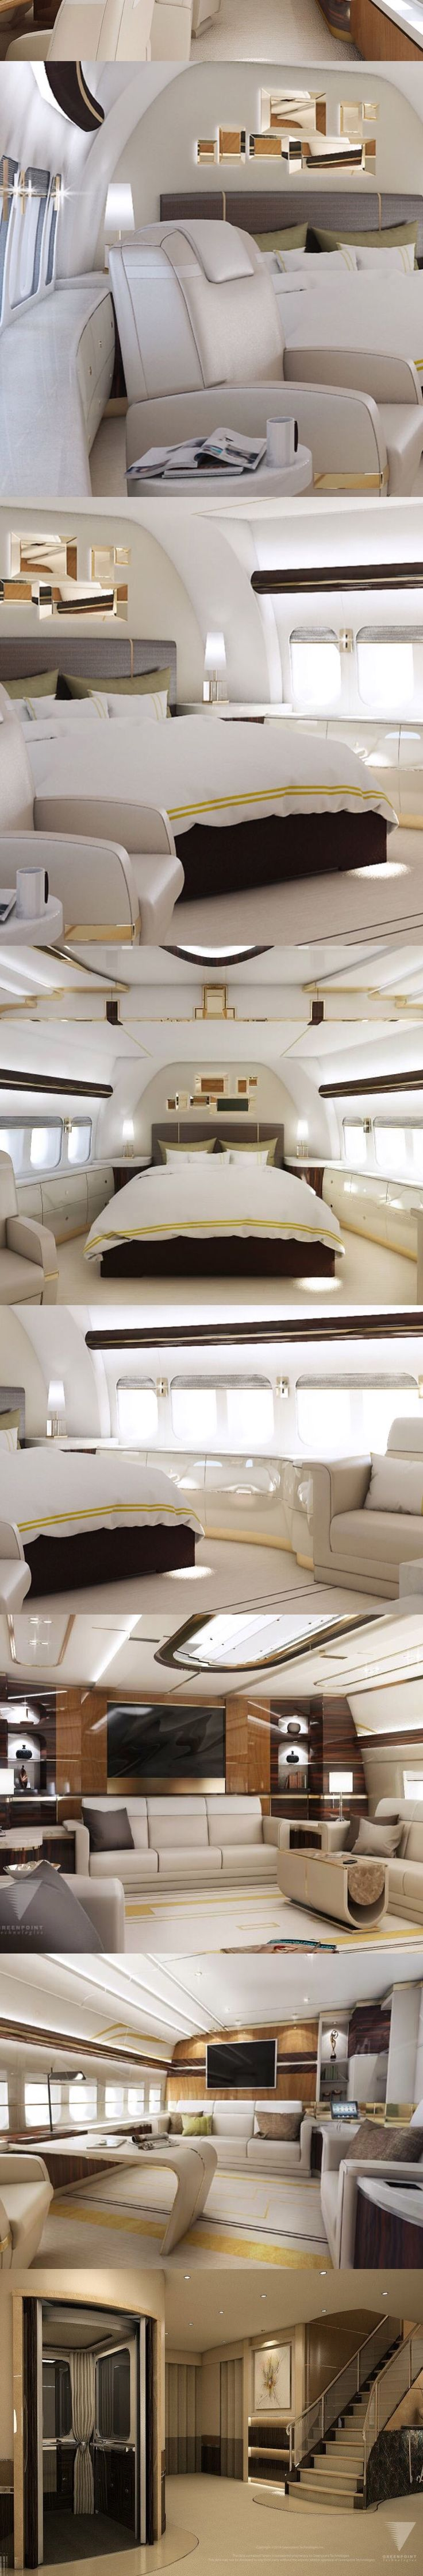 A Millionaire's Lifestyle - Private Jet -Collage by #Luxurydotcom ( from my Top pins Board )